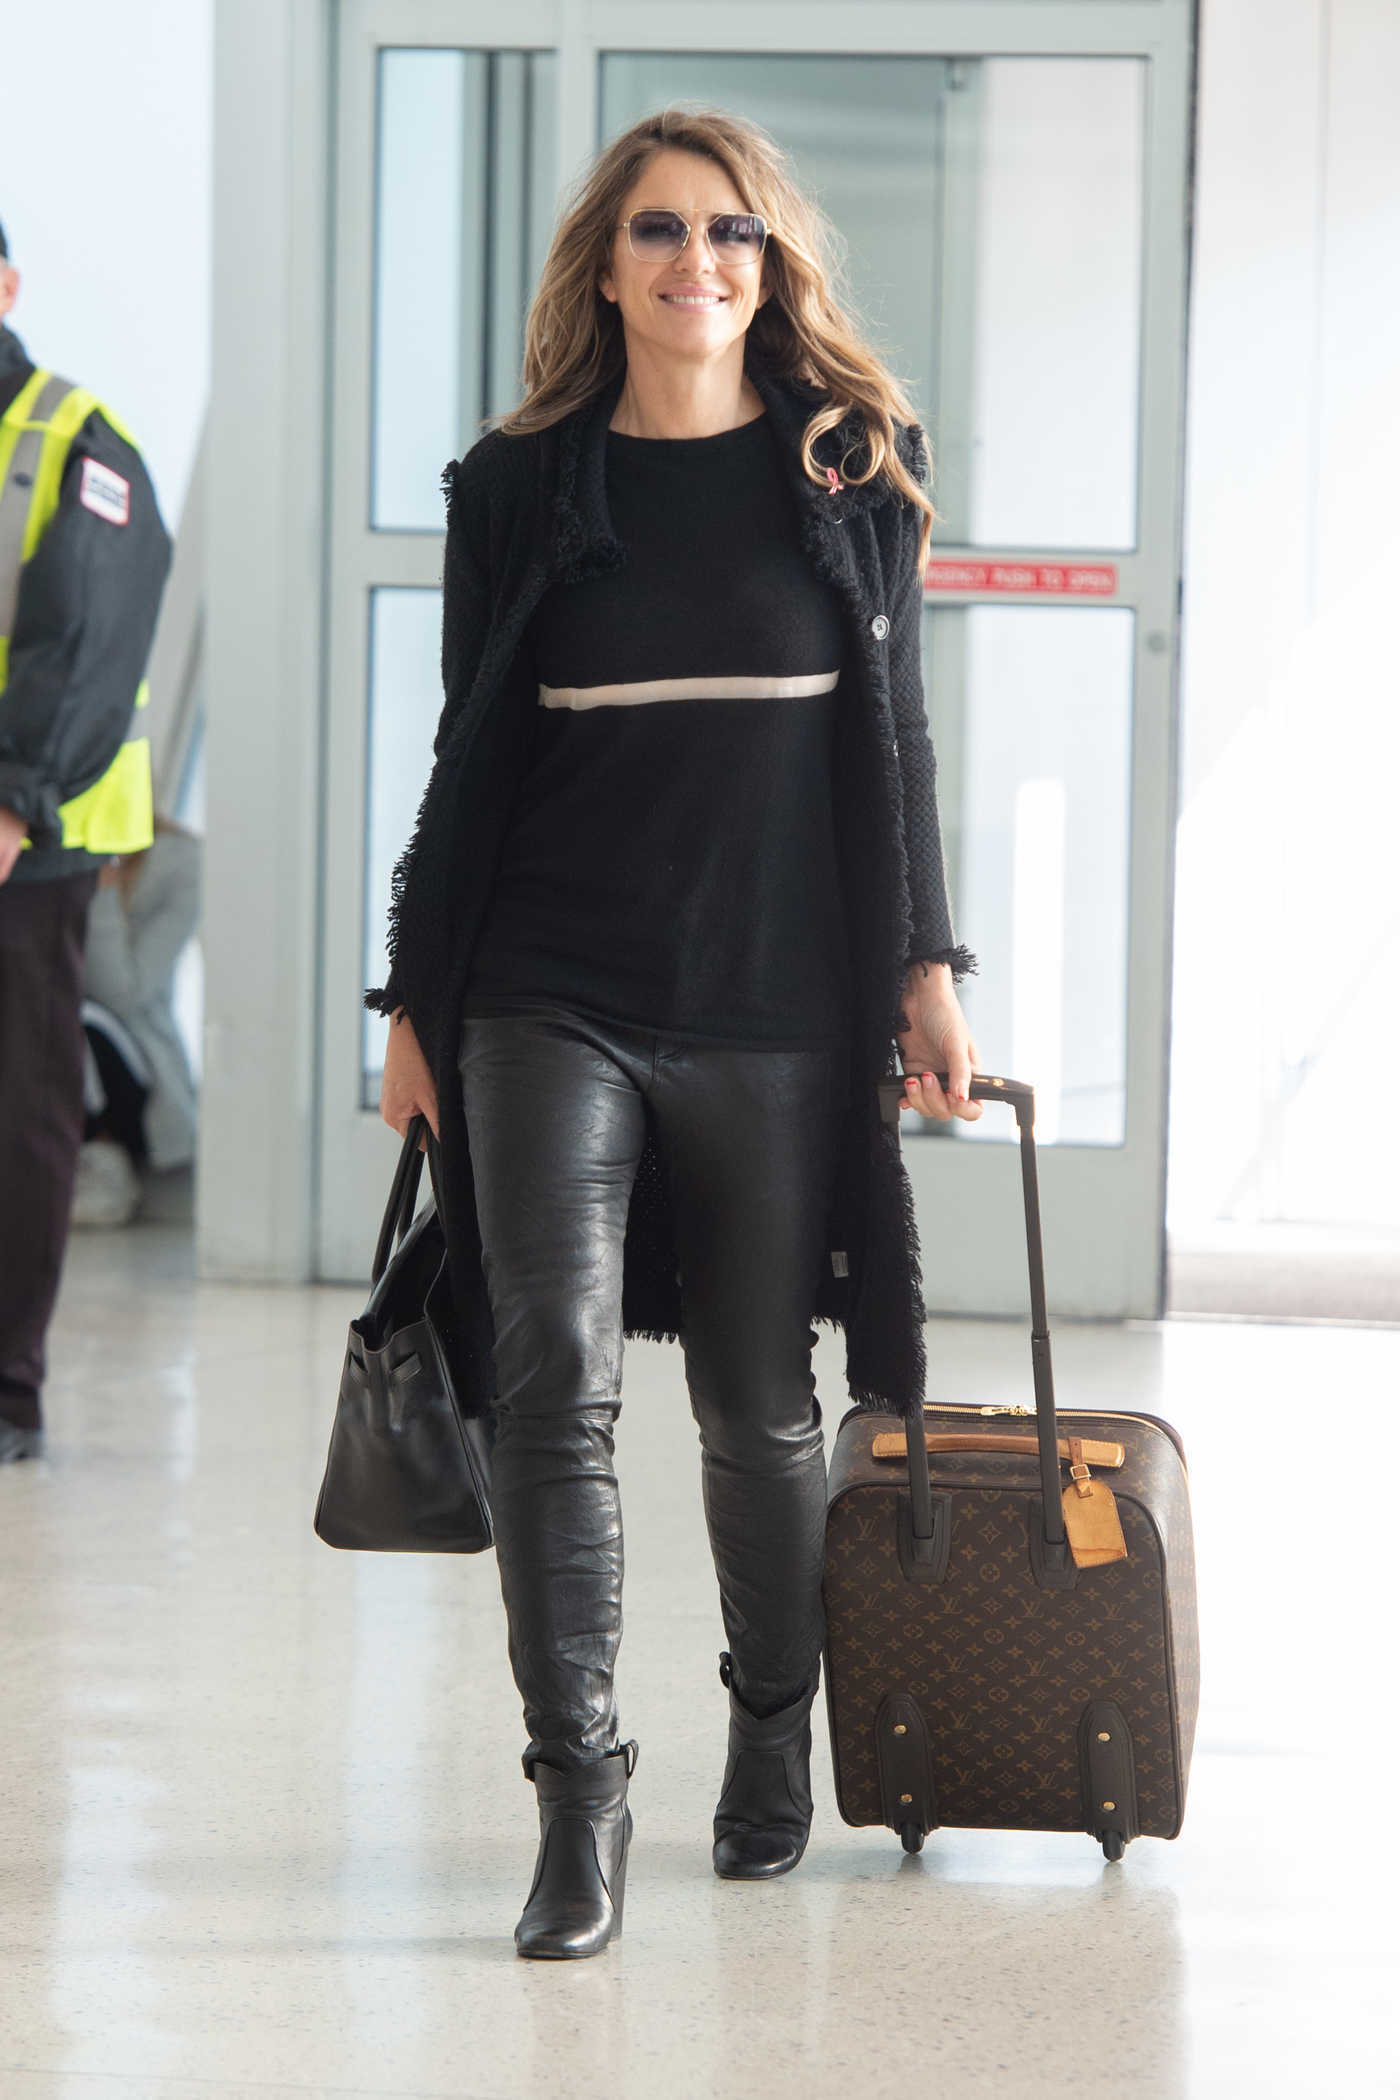 Elizabeth Hurley in a Black Leather Pants Arrives at JFK Airport in NYC 10/12/2018